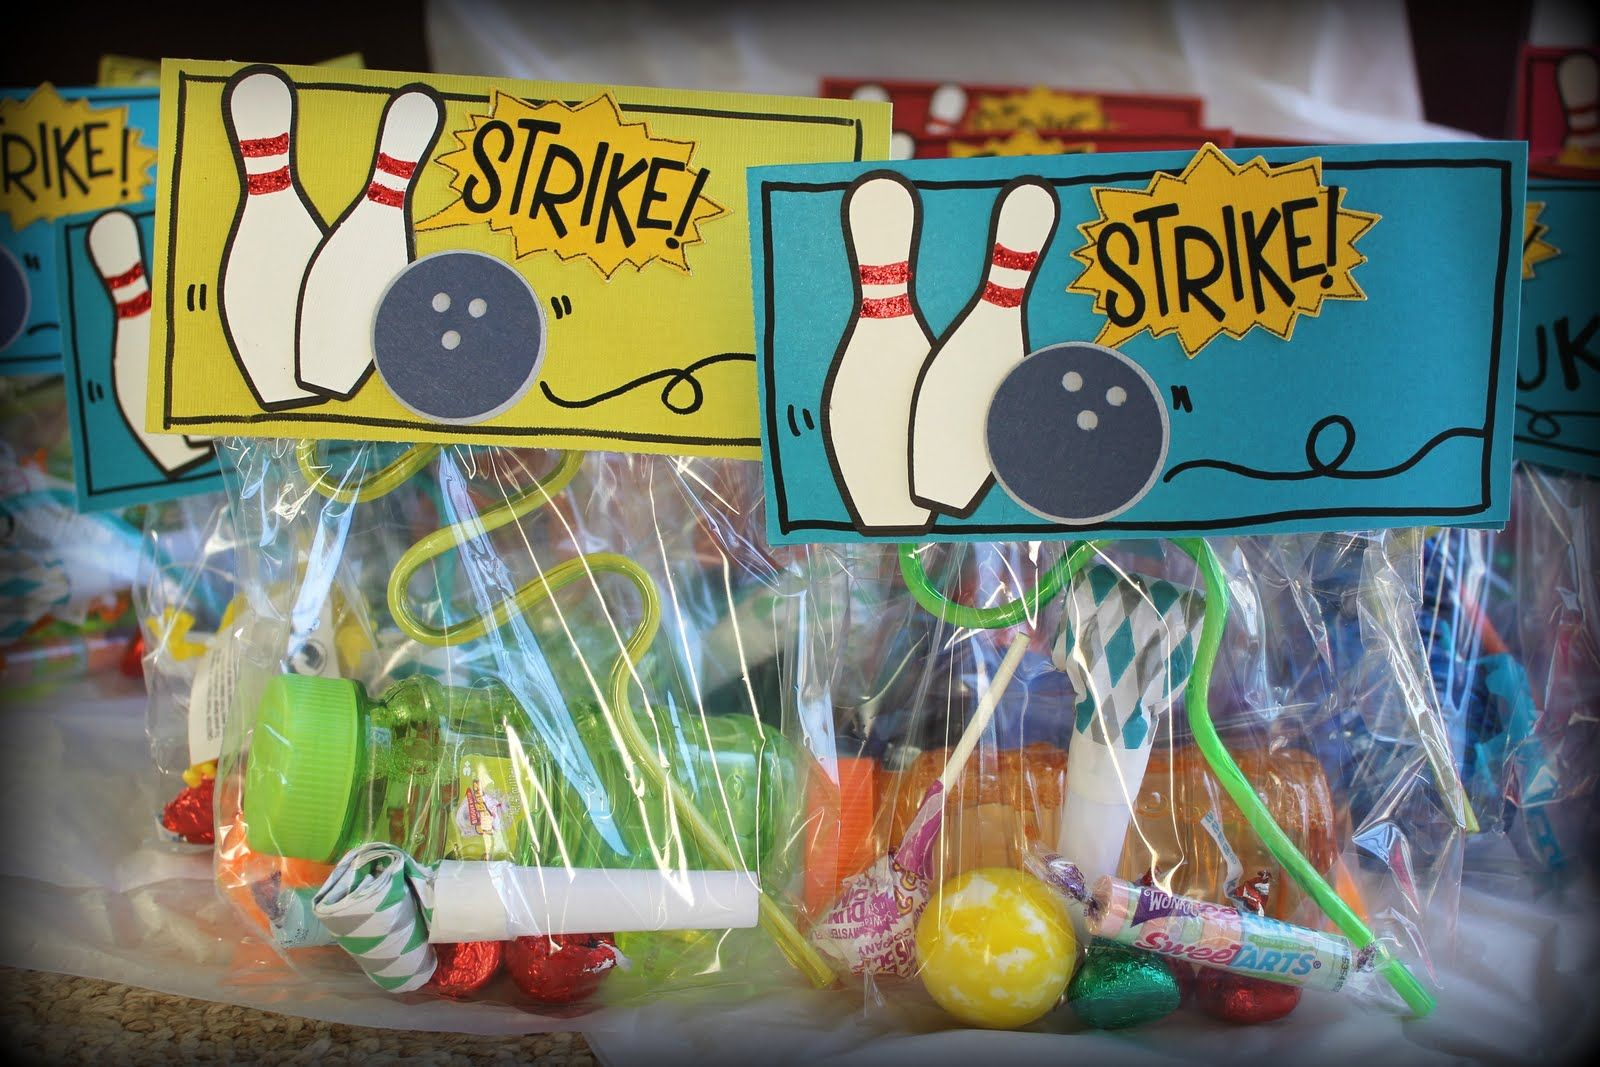 The Cutest Bowling Goo Bags Ever It Is Not Easy Finding Themed Party Decor So I Had To Design My Own Turned O